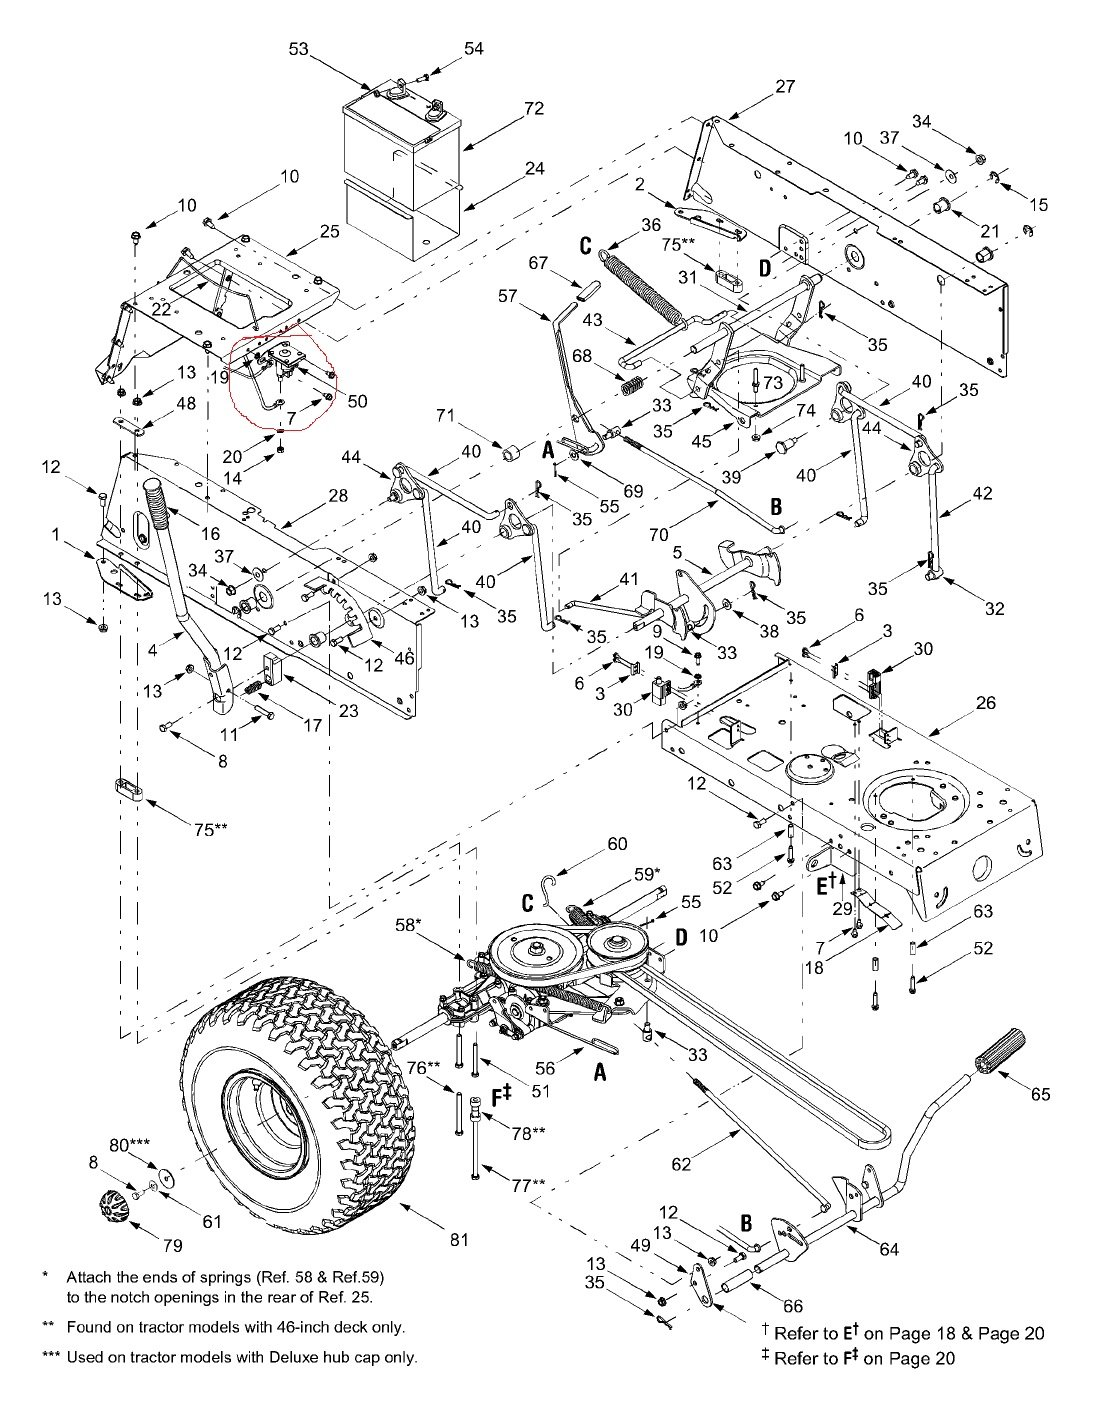 Craftsman Lawn Mower Wiring Schematic,Lawn.Free Download ... on